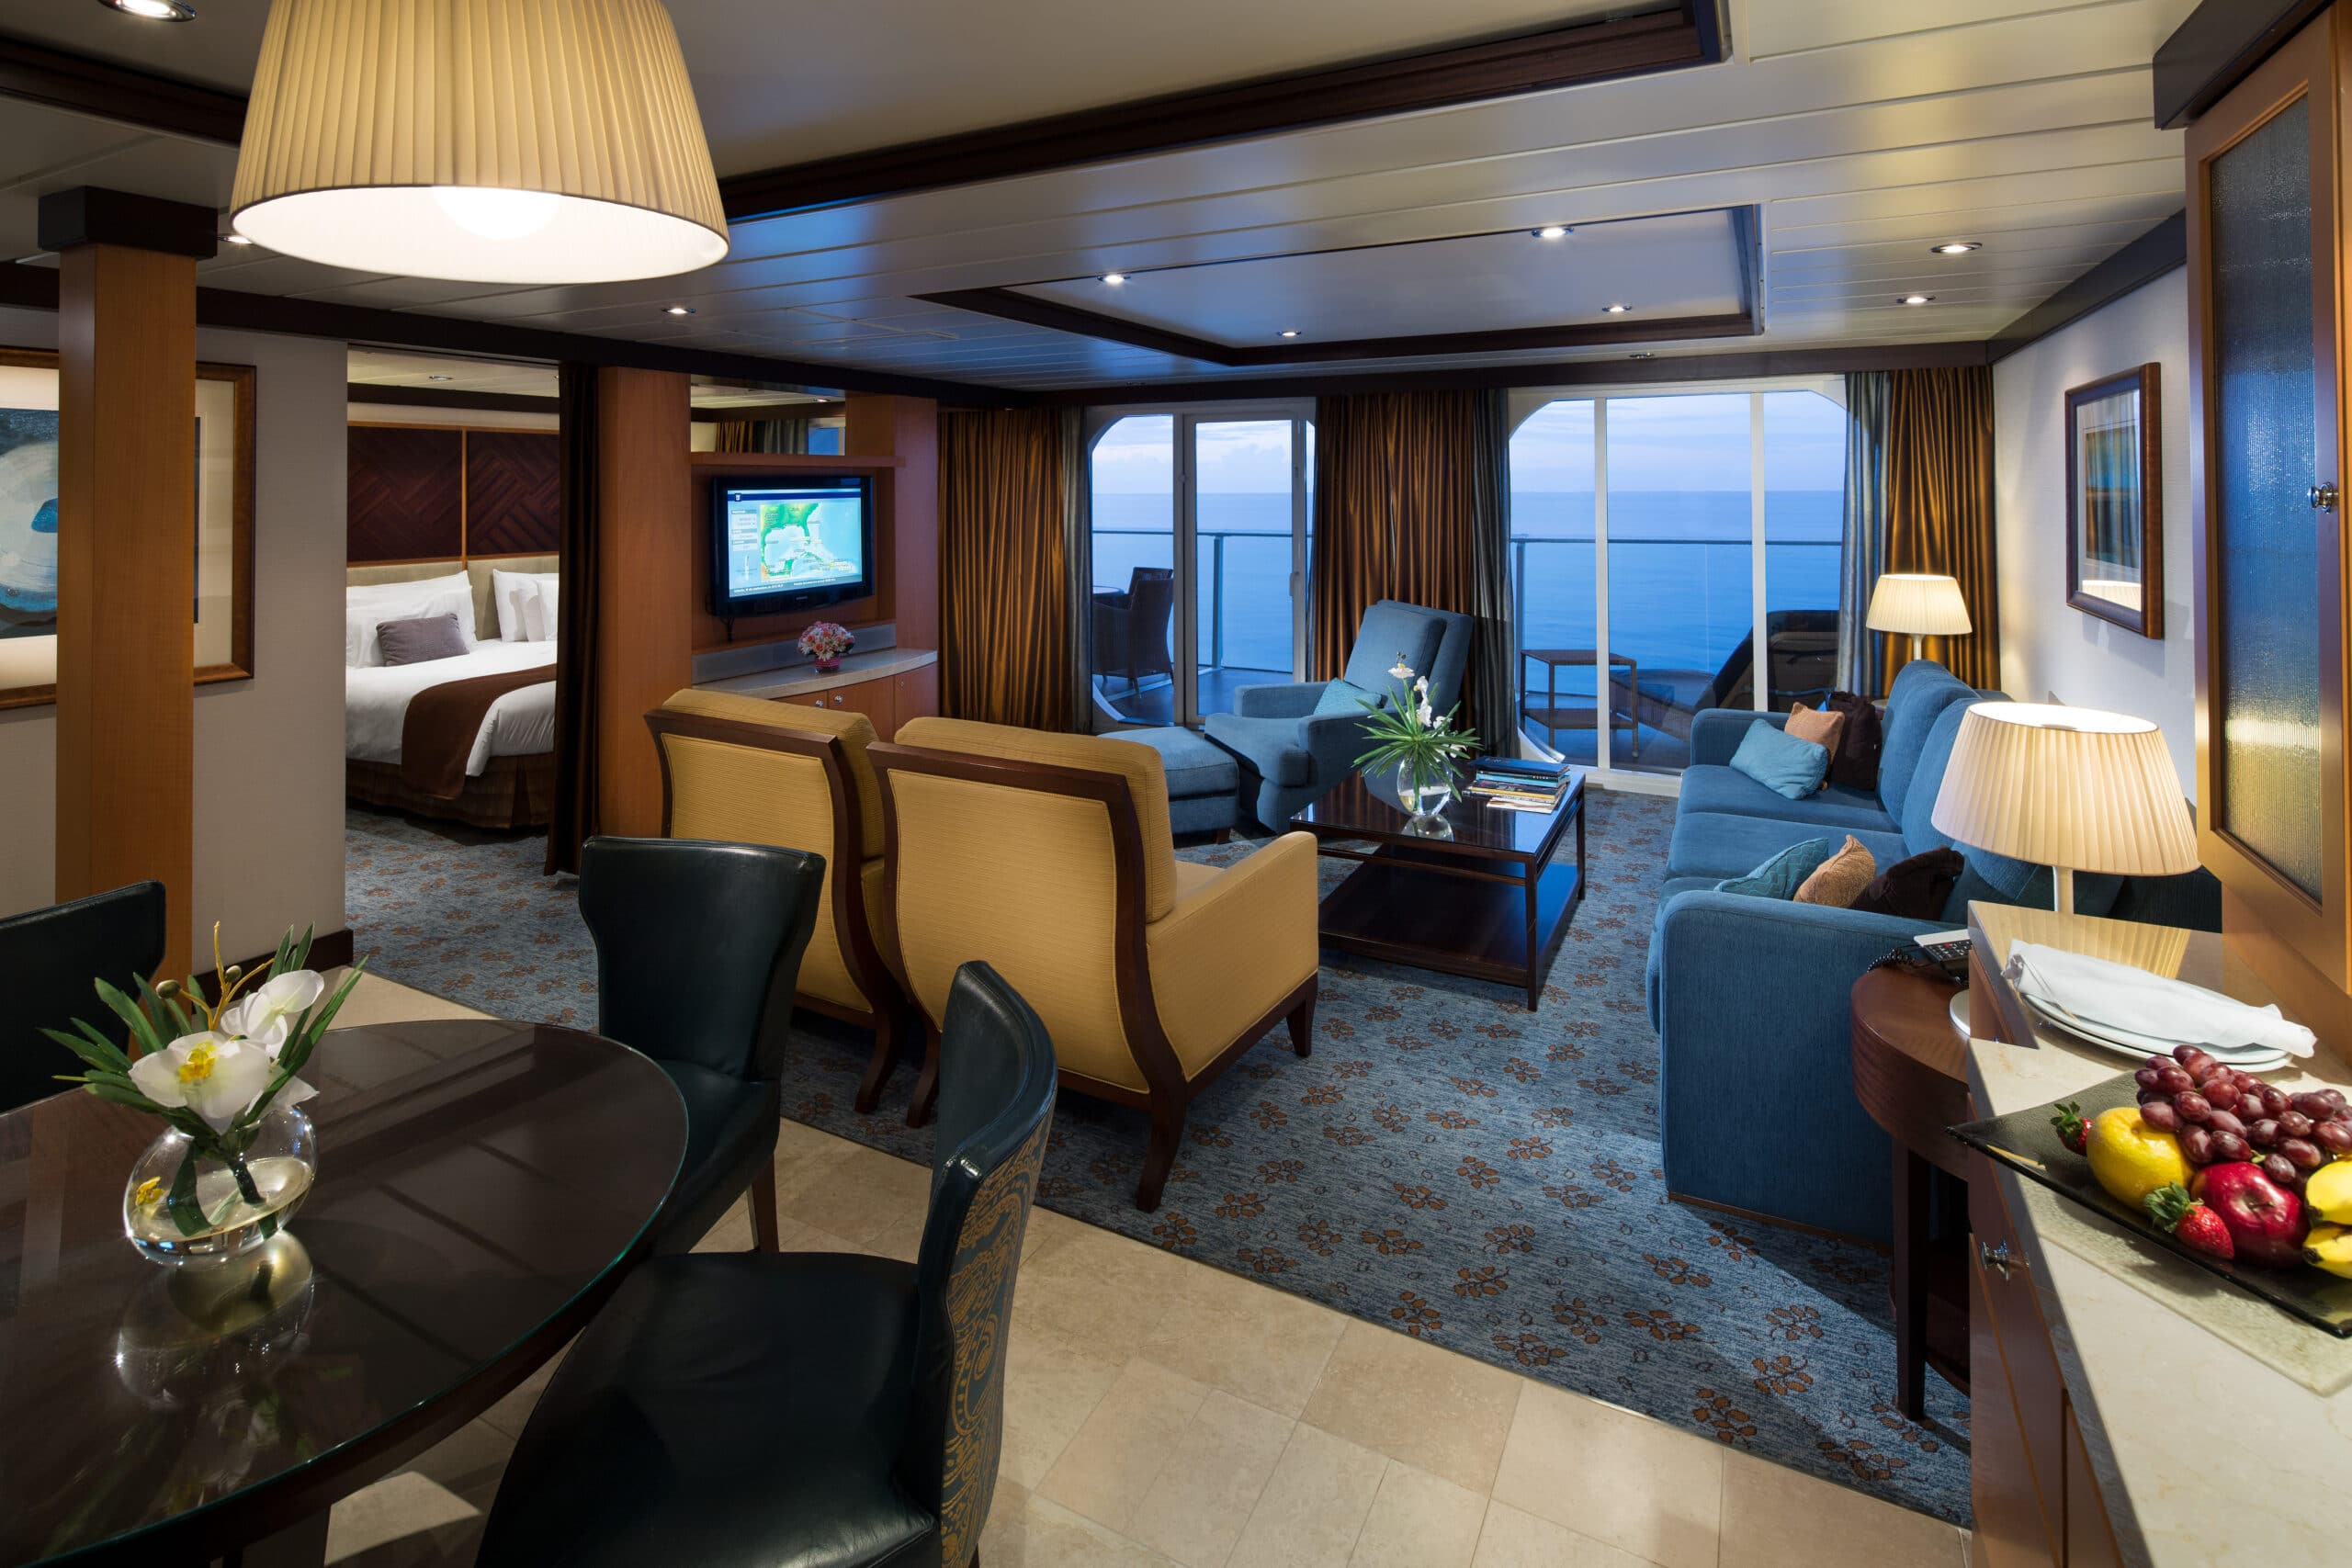 Royal-Caribbean-International-Allure-of-the-Seas-Oasis-of-the-seas-schip-cruiseschip-categorie-OS-Owner-Suite